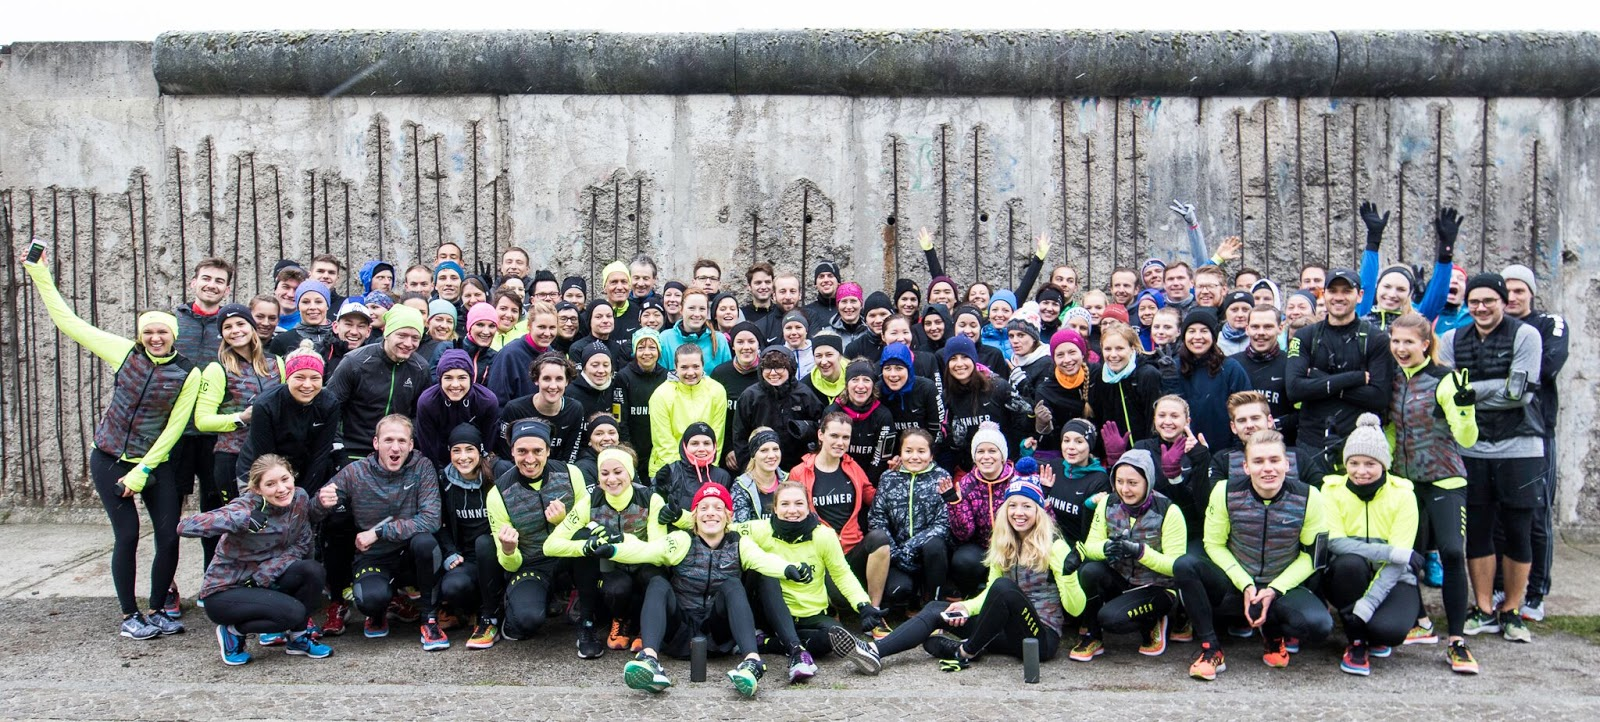 Nike+ Run Club Berlin